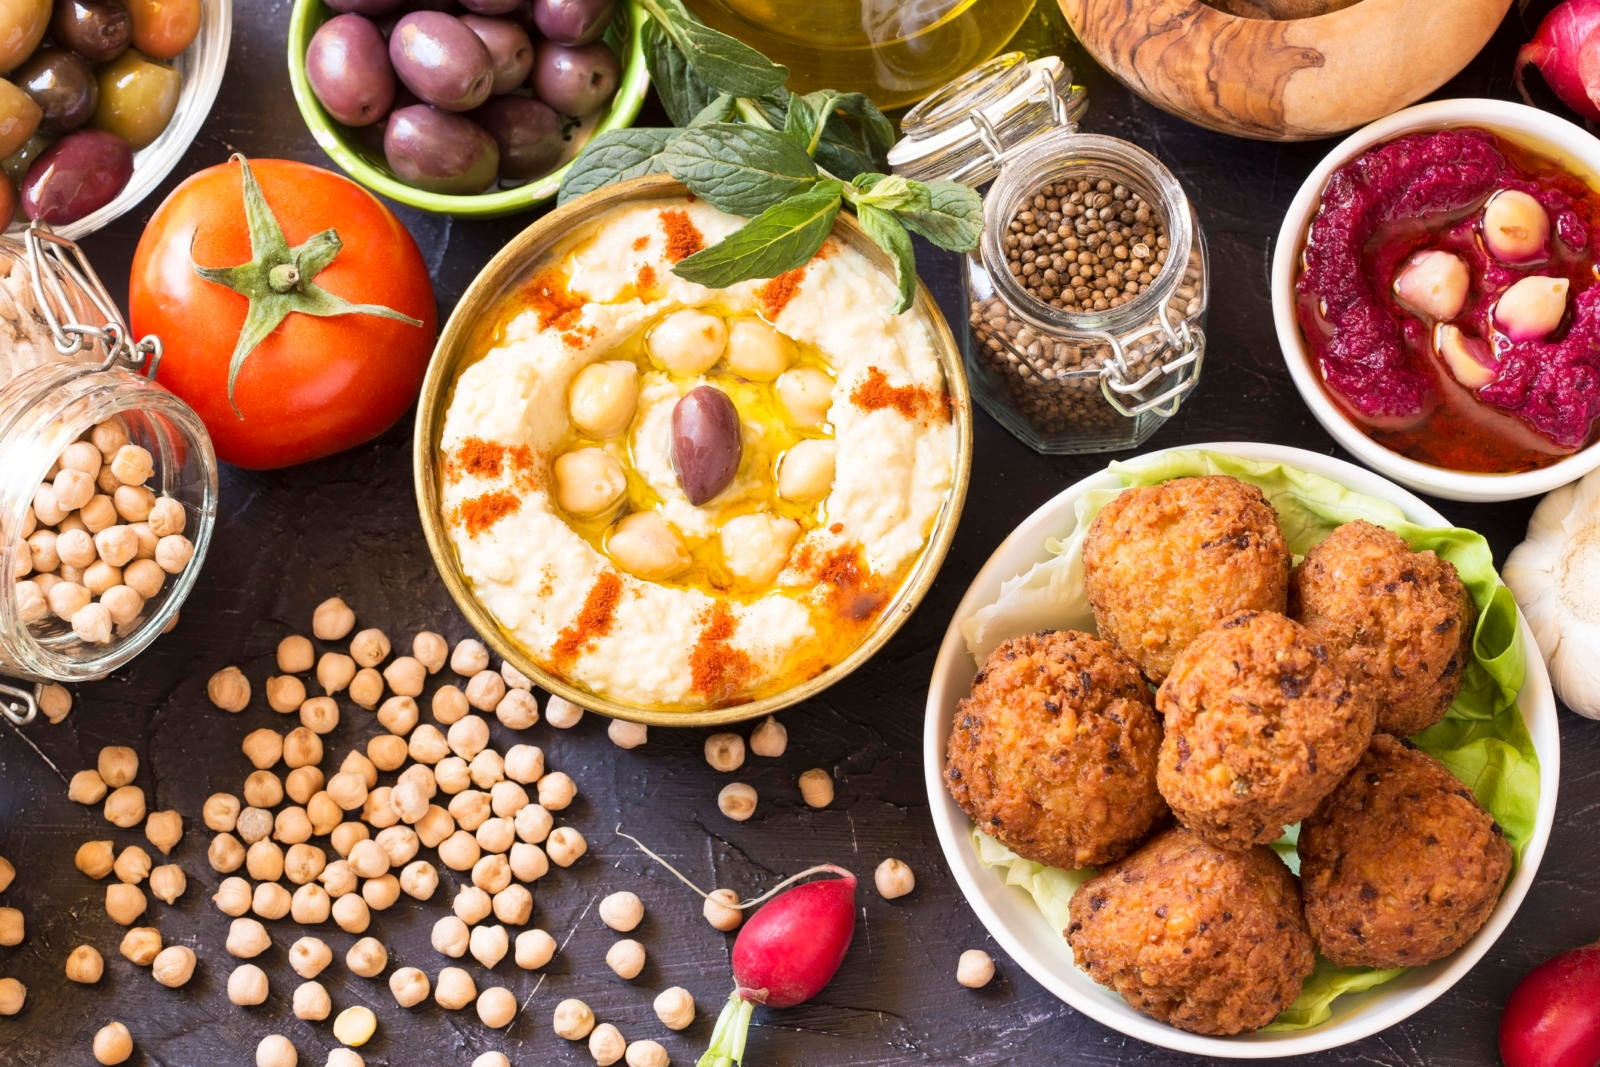 Food That Can Improve Sexuality